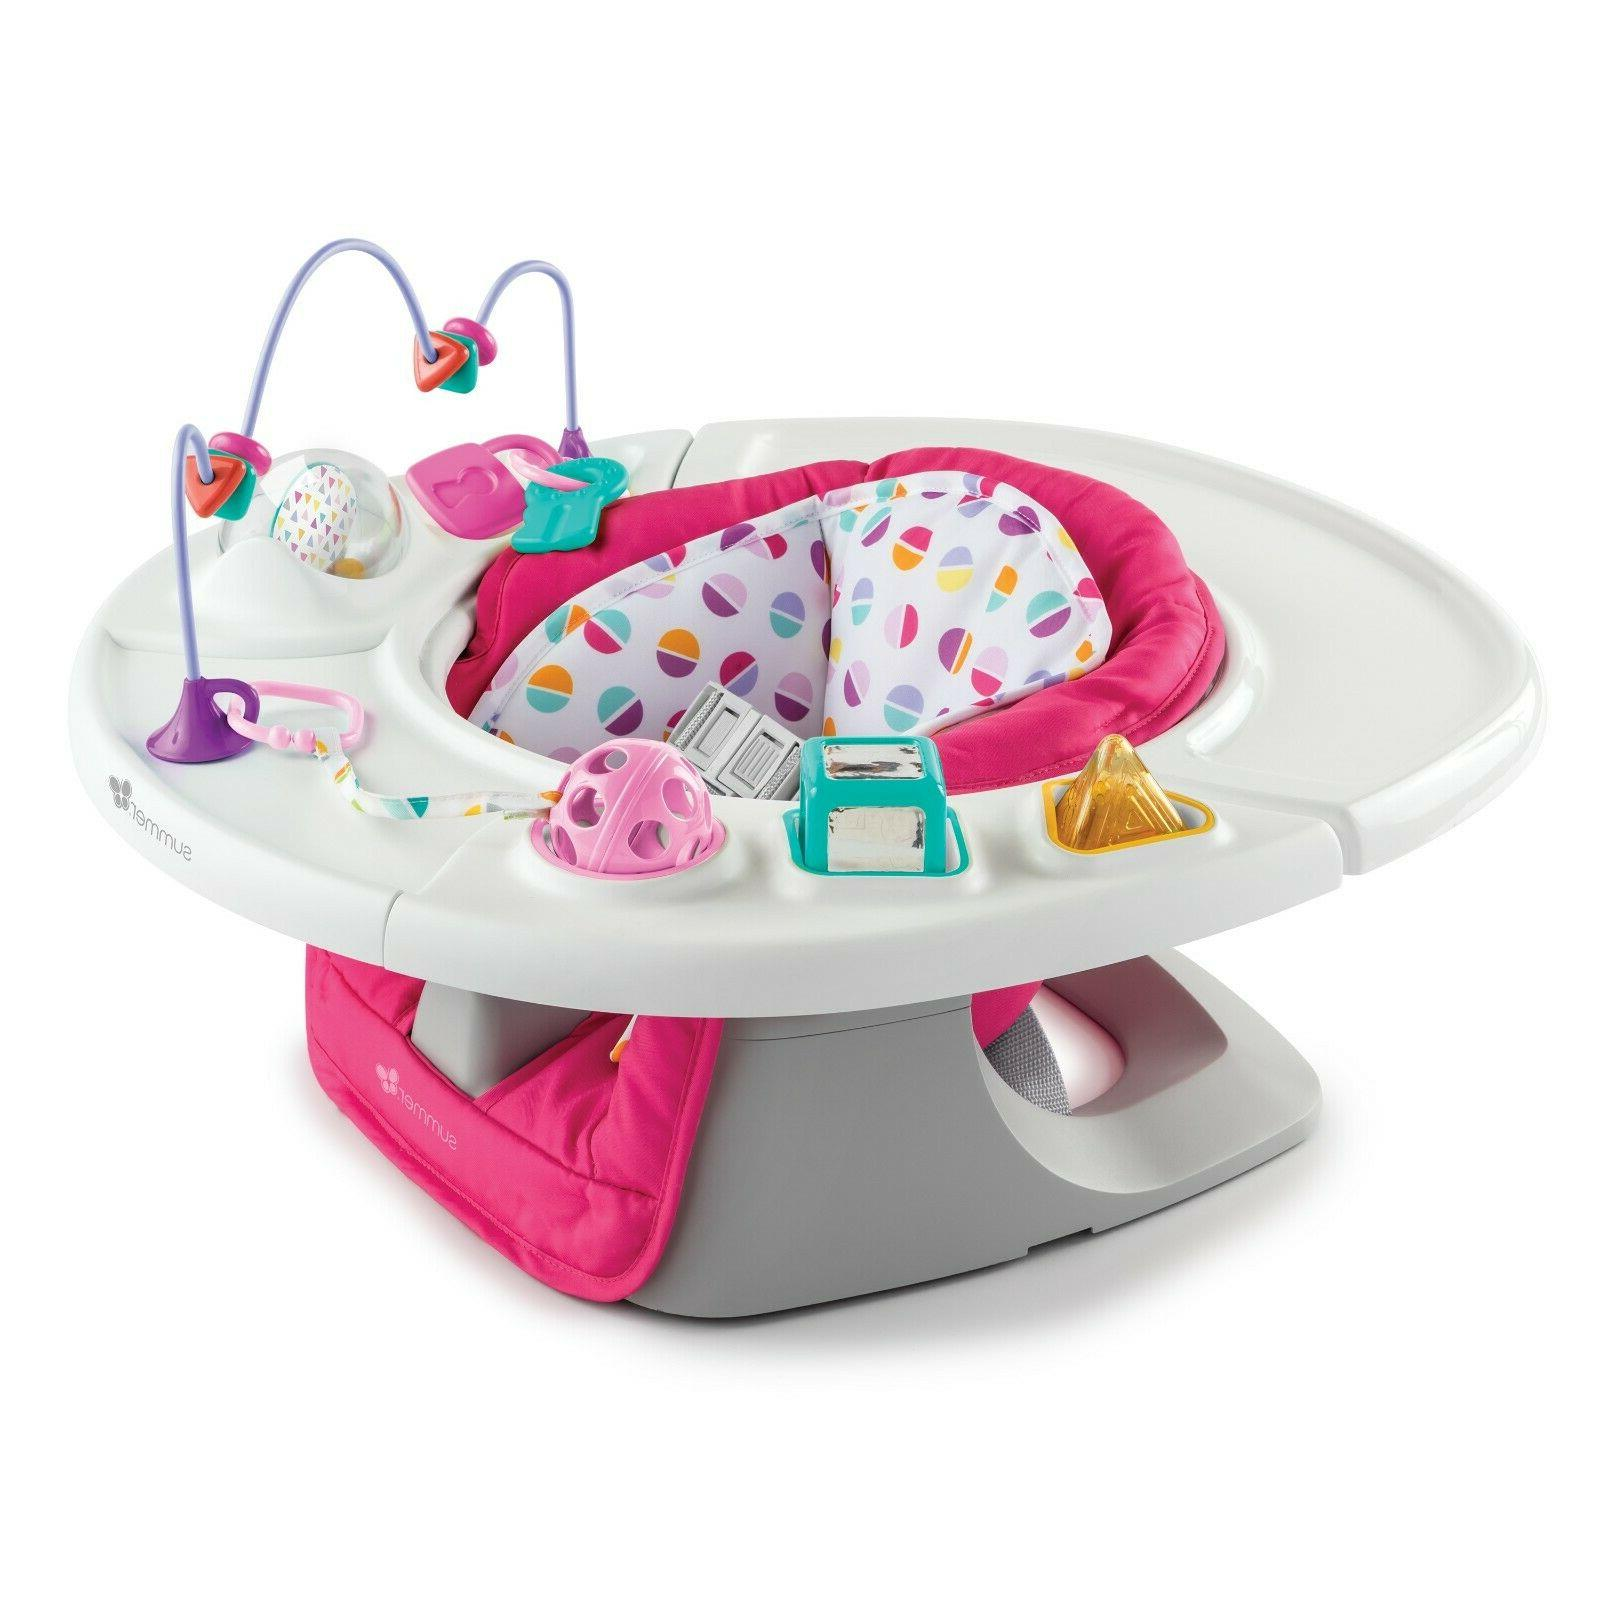 Infant 4-in-1 Super Seat Baby Chair Activity Center Booster